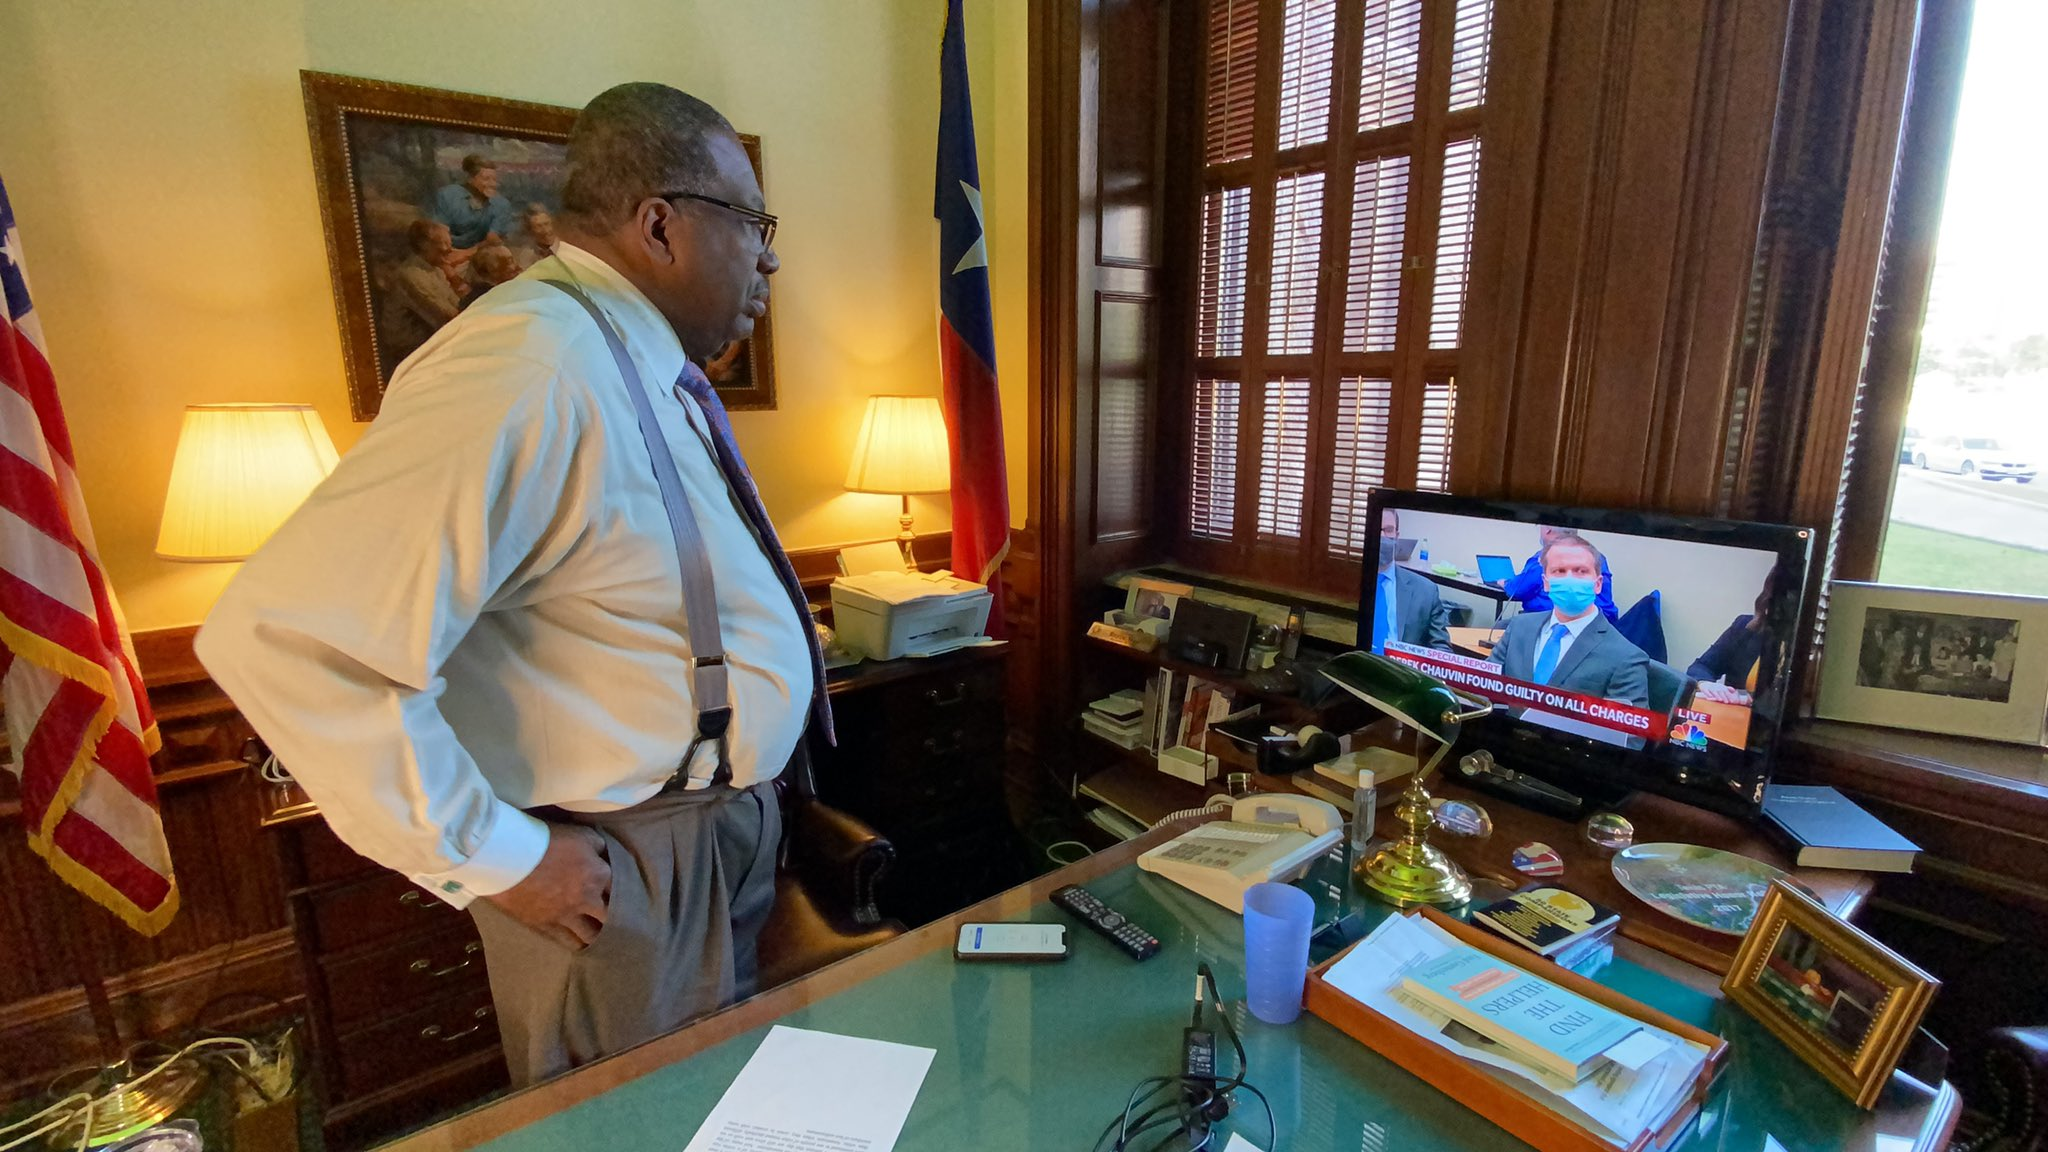 Texas Sen. Royce West watches in his office as the guilty verdict against Derek Chauvin is read April 20, 2021 (Nexstar Photo/Wes Rapaport)